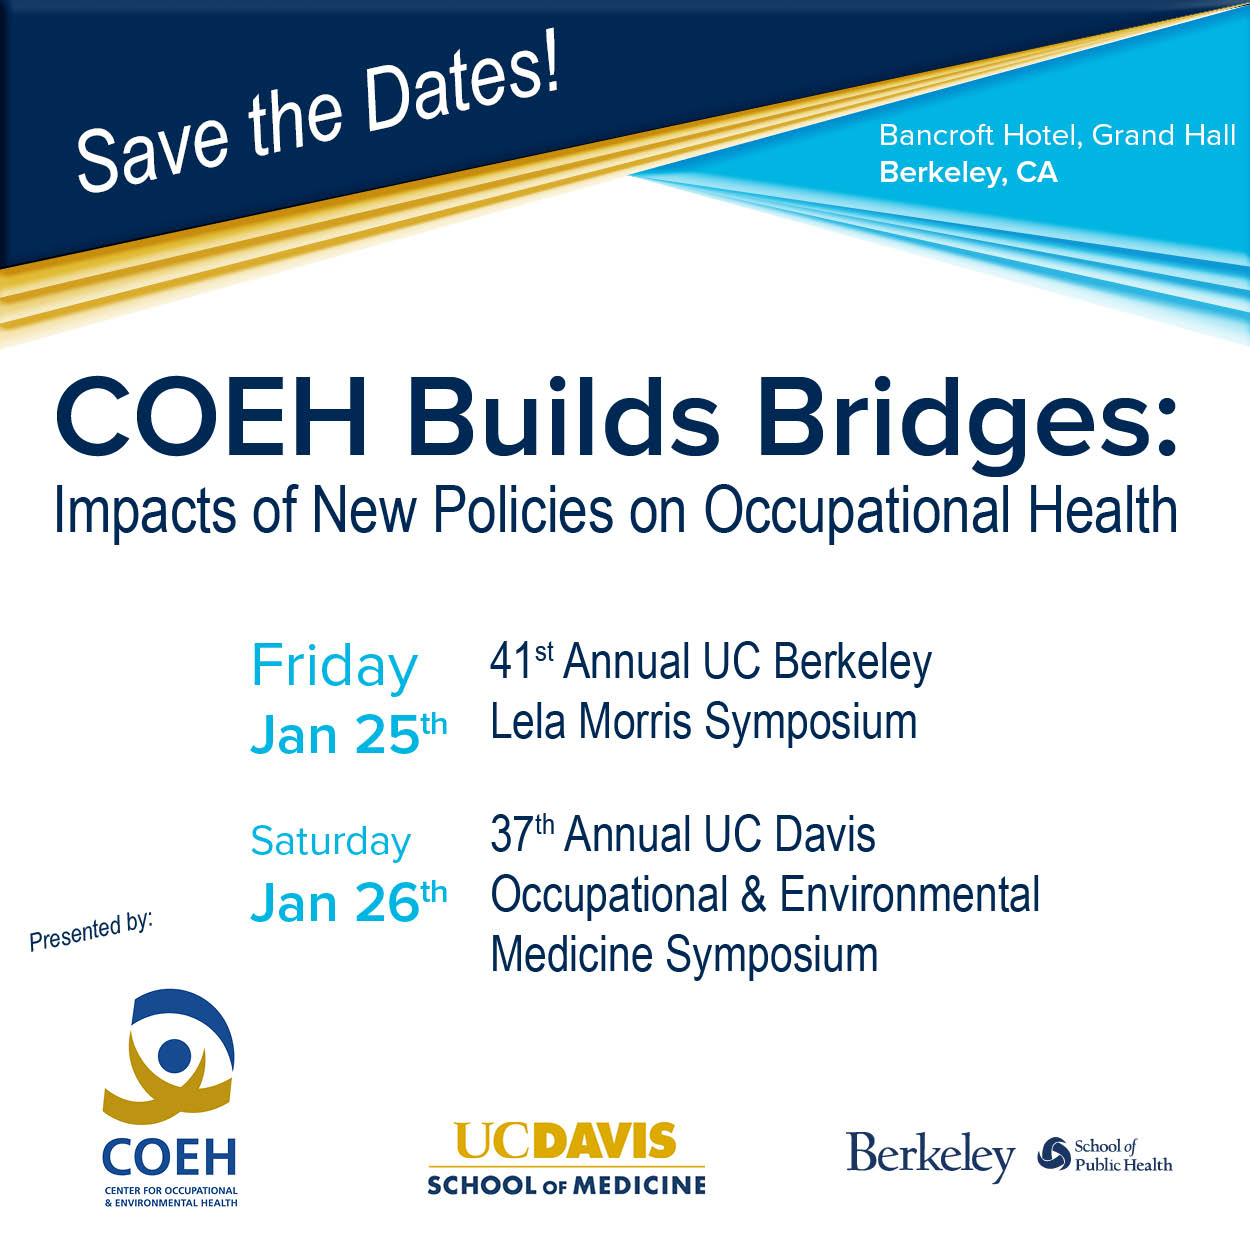 COEH Builds Bridges impact of new policies on occupational health presented by UC Davis and UC Berkeley